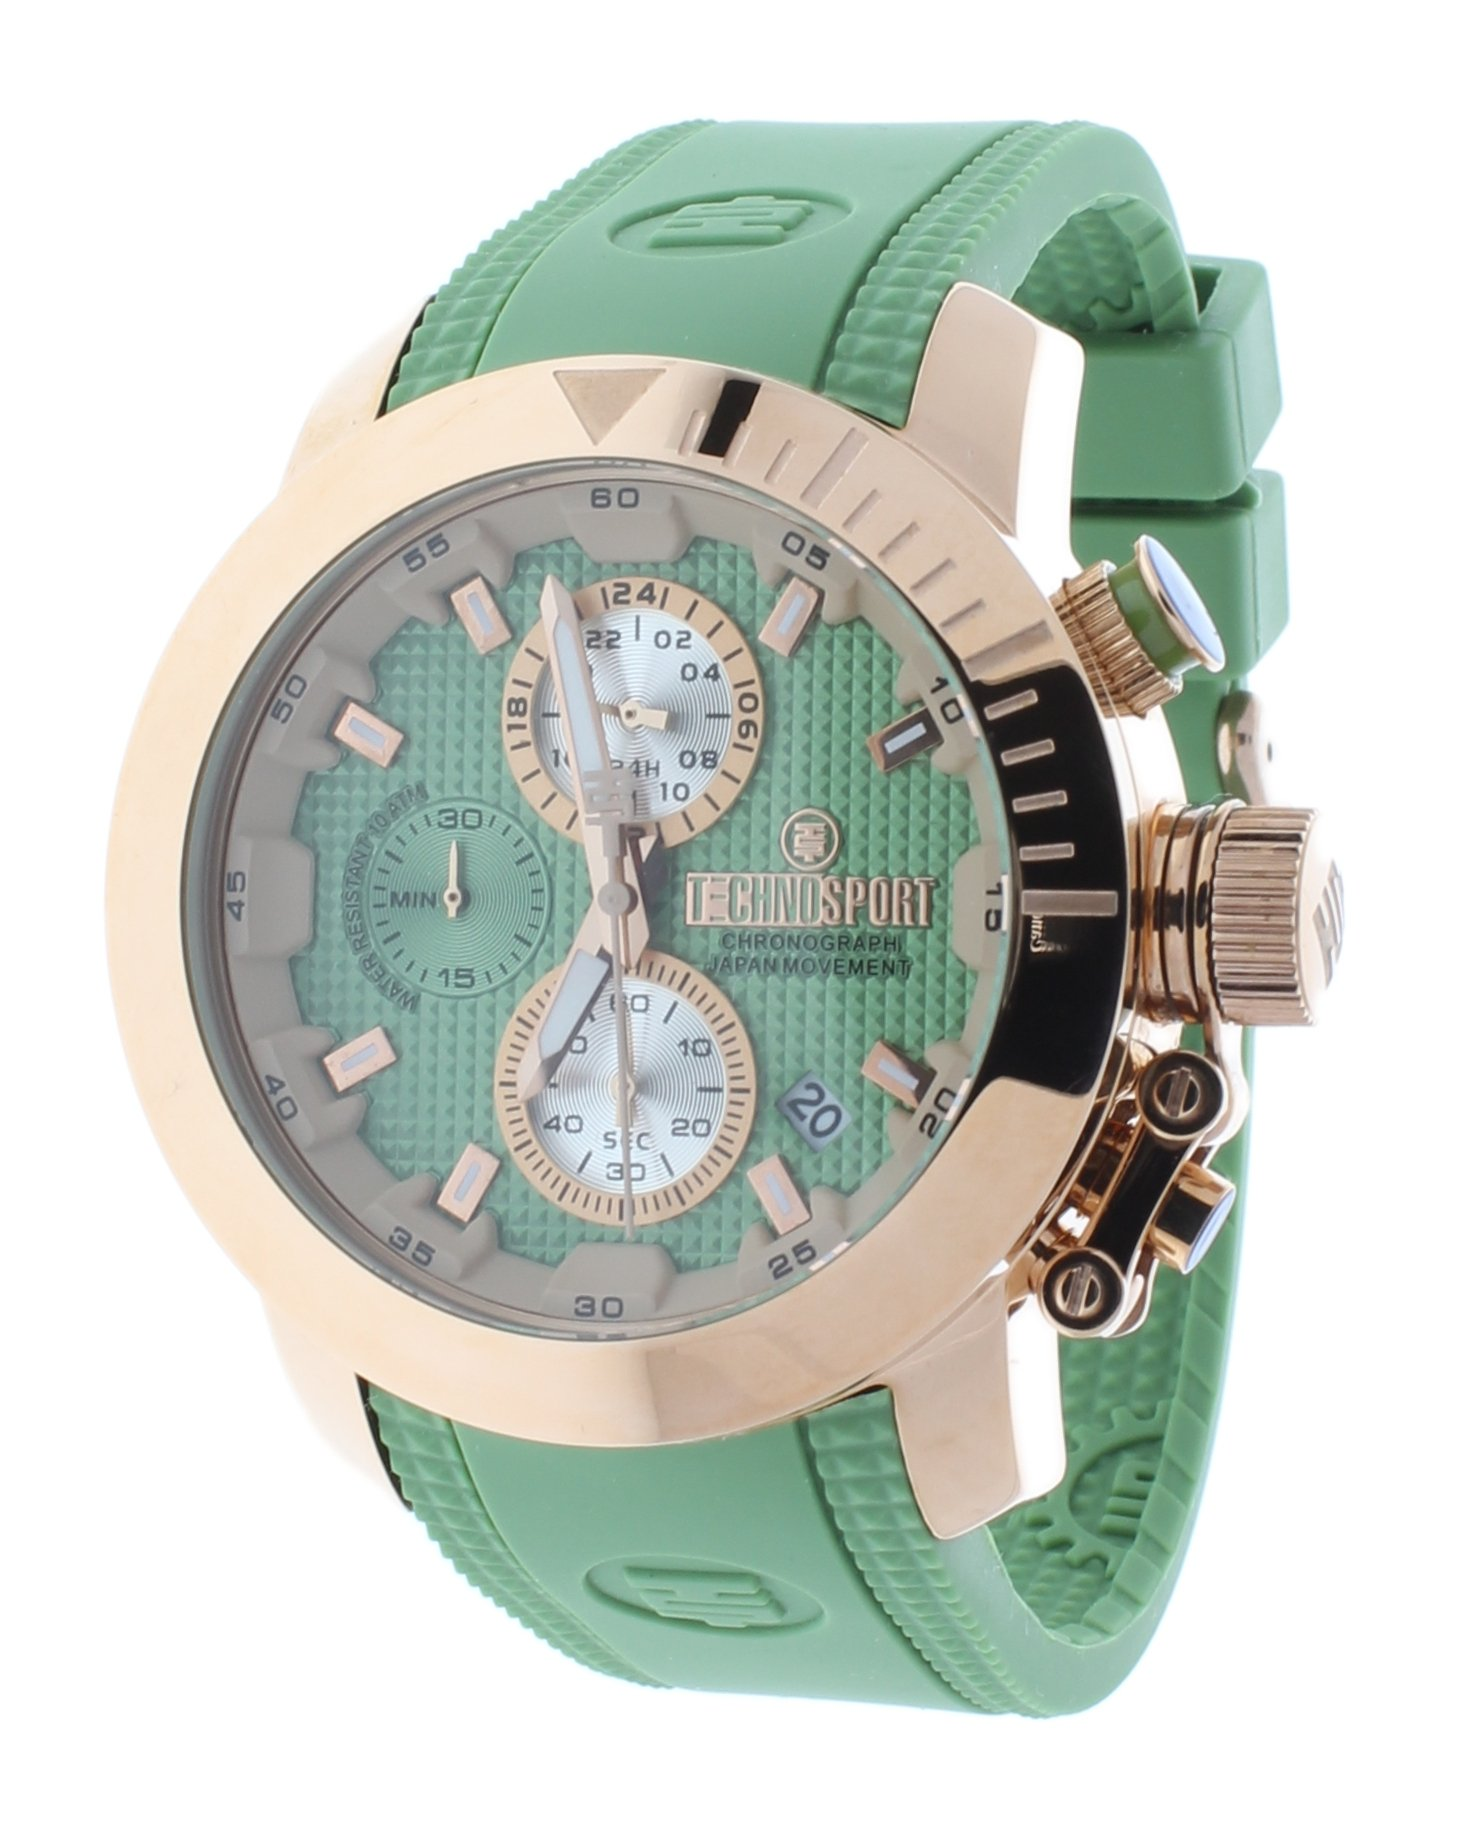 Technosport TS-231-6 Unisex Watch Rose Gold And Light Green Chronograph Function Silicone Strap by TECHNOSPORT